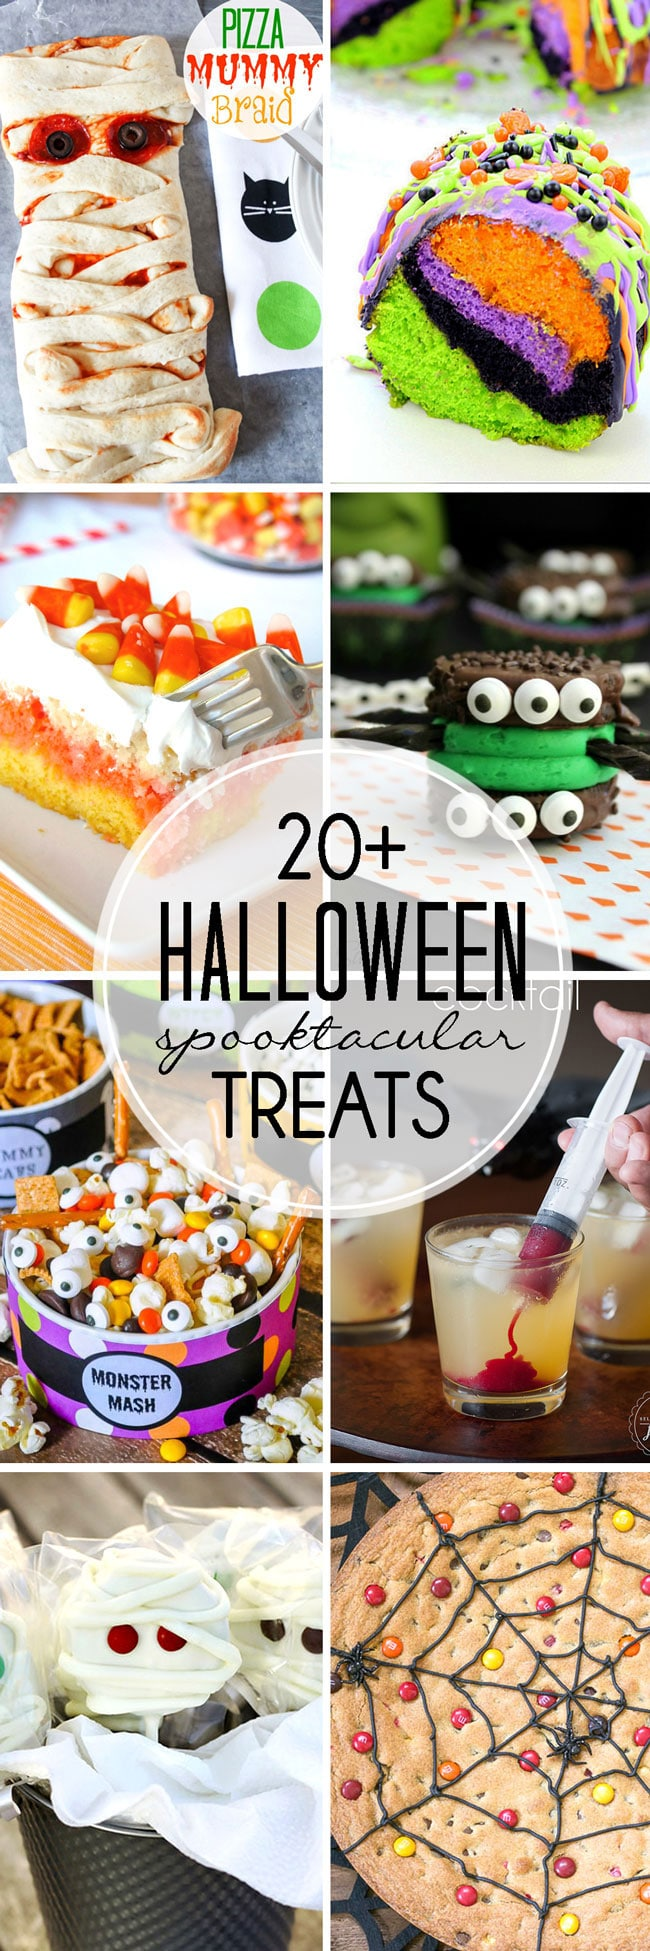 over twenty amazing halloween treats you can make for your family